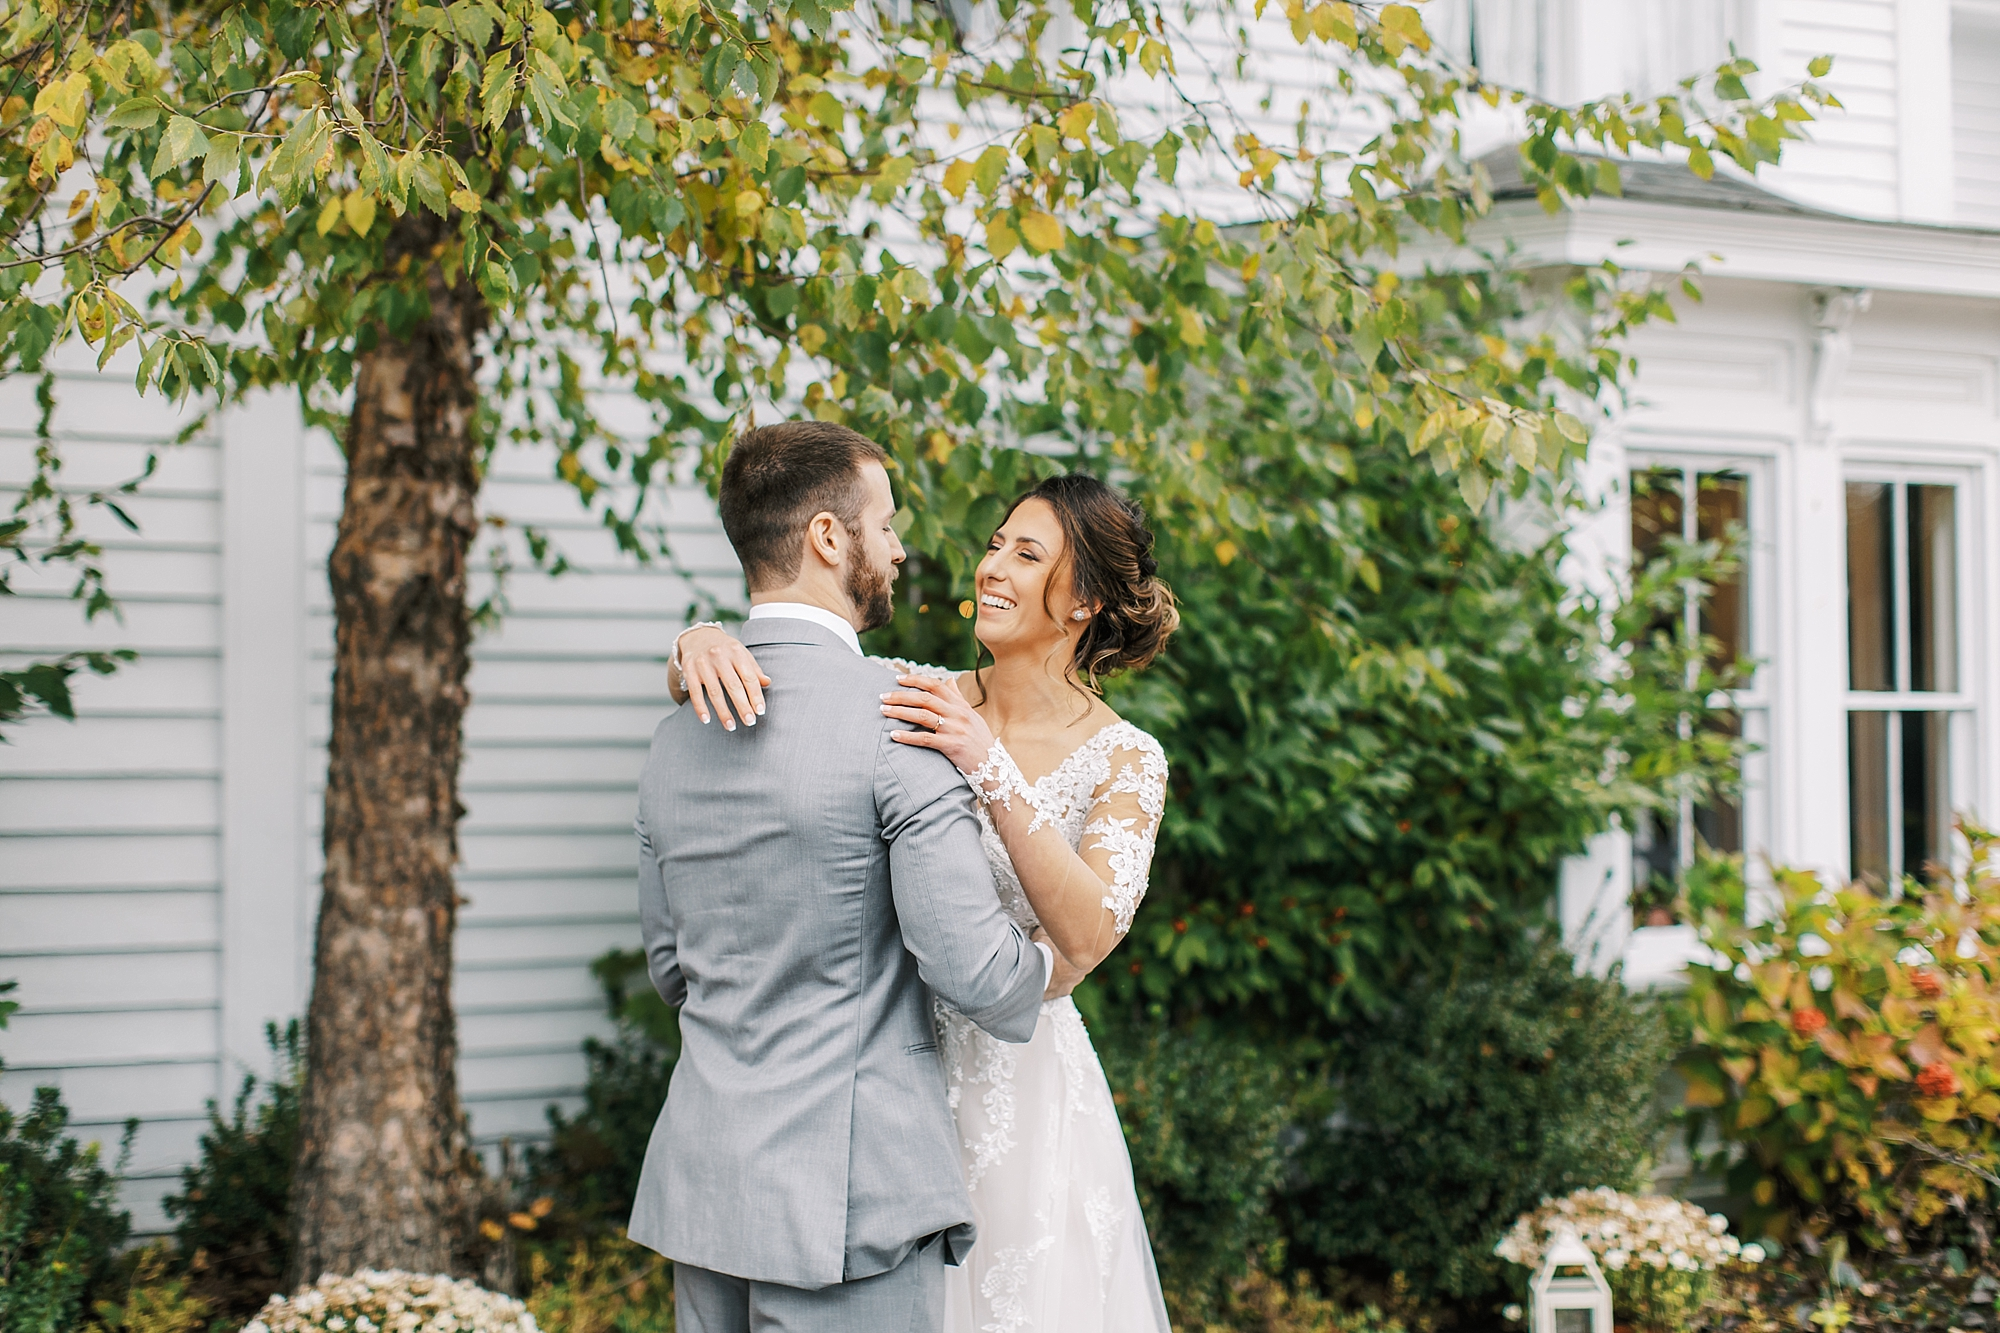 Sweet Garden Wedding Photography Abbie Holmes Estate in Cape May NJ by Magdalena Studios 0023